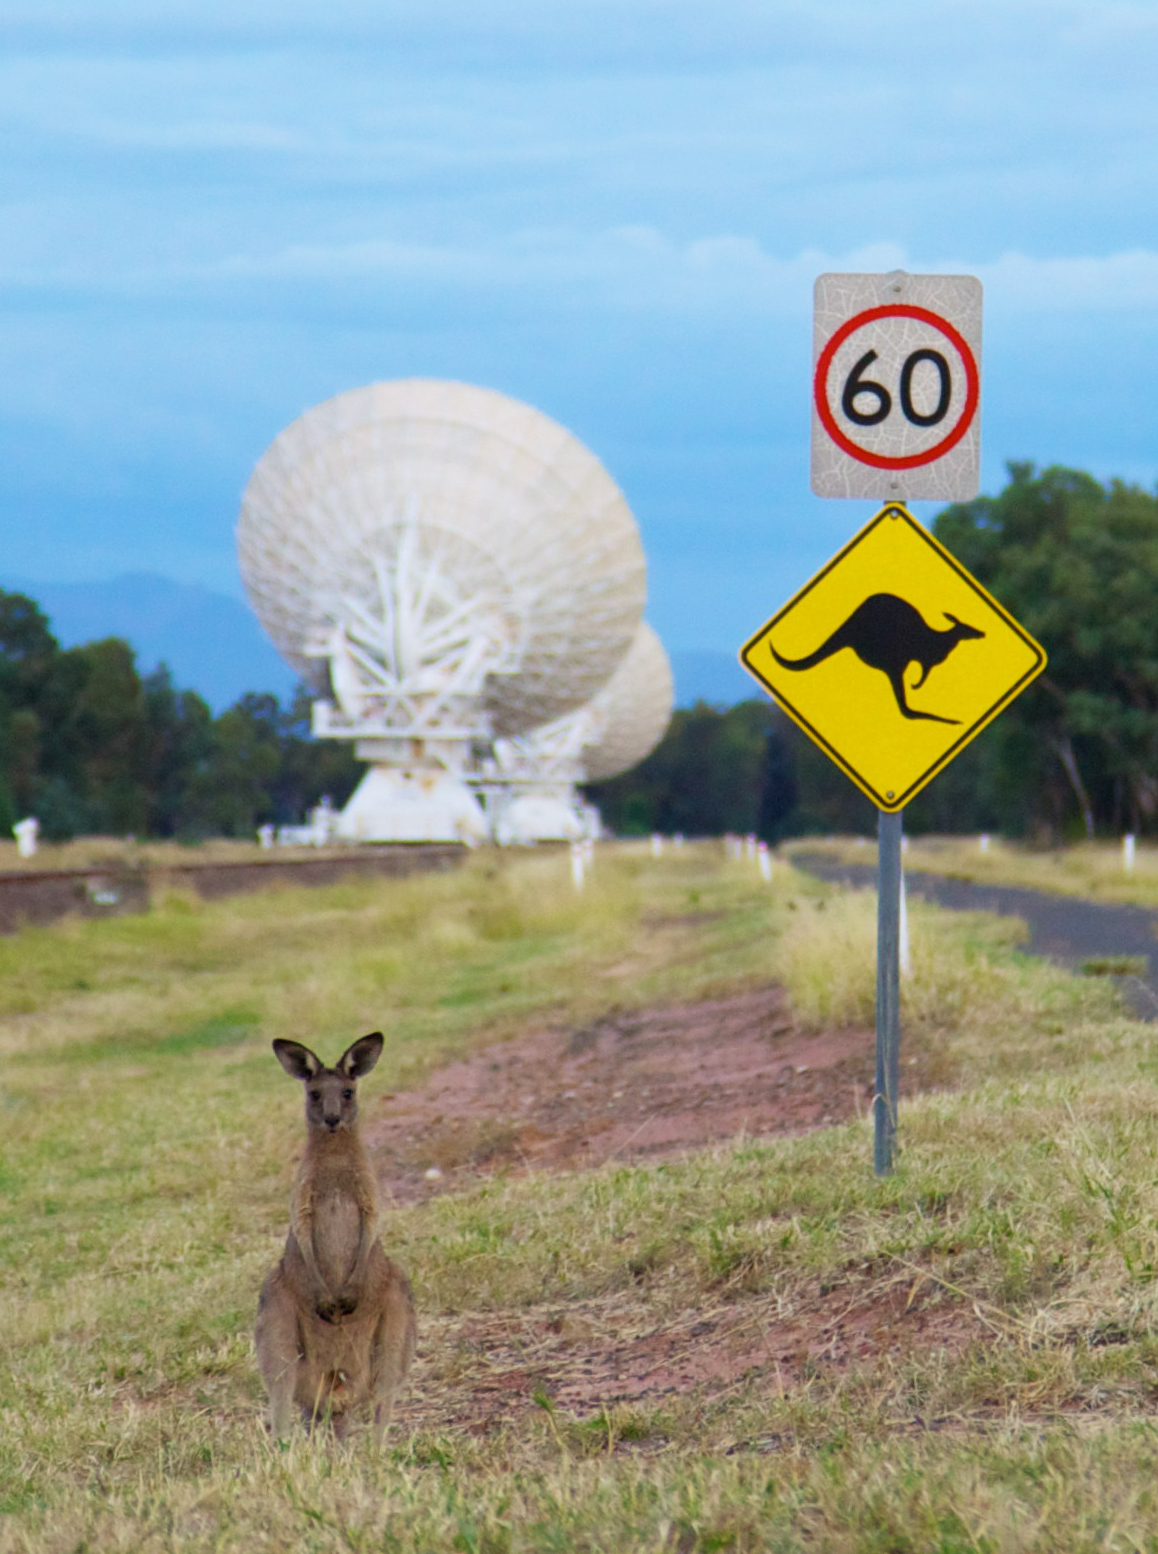 A seated kangaroo facing the camera in the foreground, a sign depicting a '60' speed zone and kangaroos crossing in the midground, and the back of two large white telescope dishes in the background.